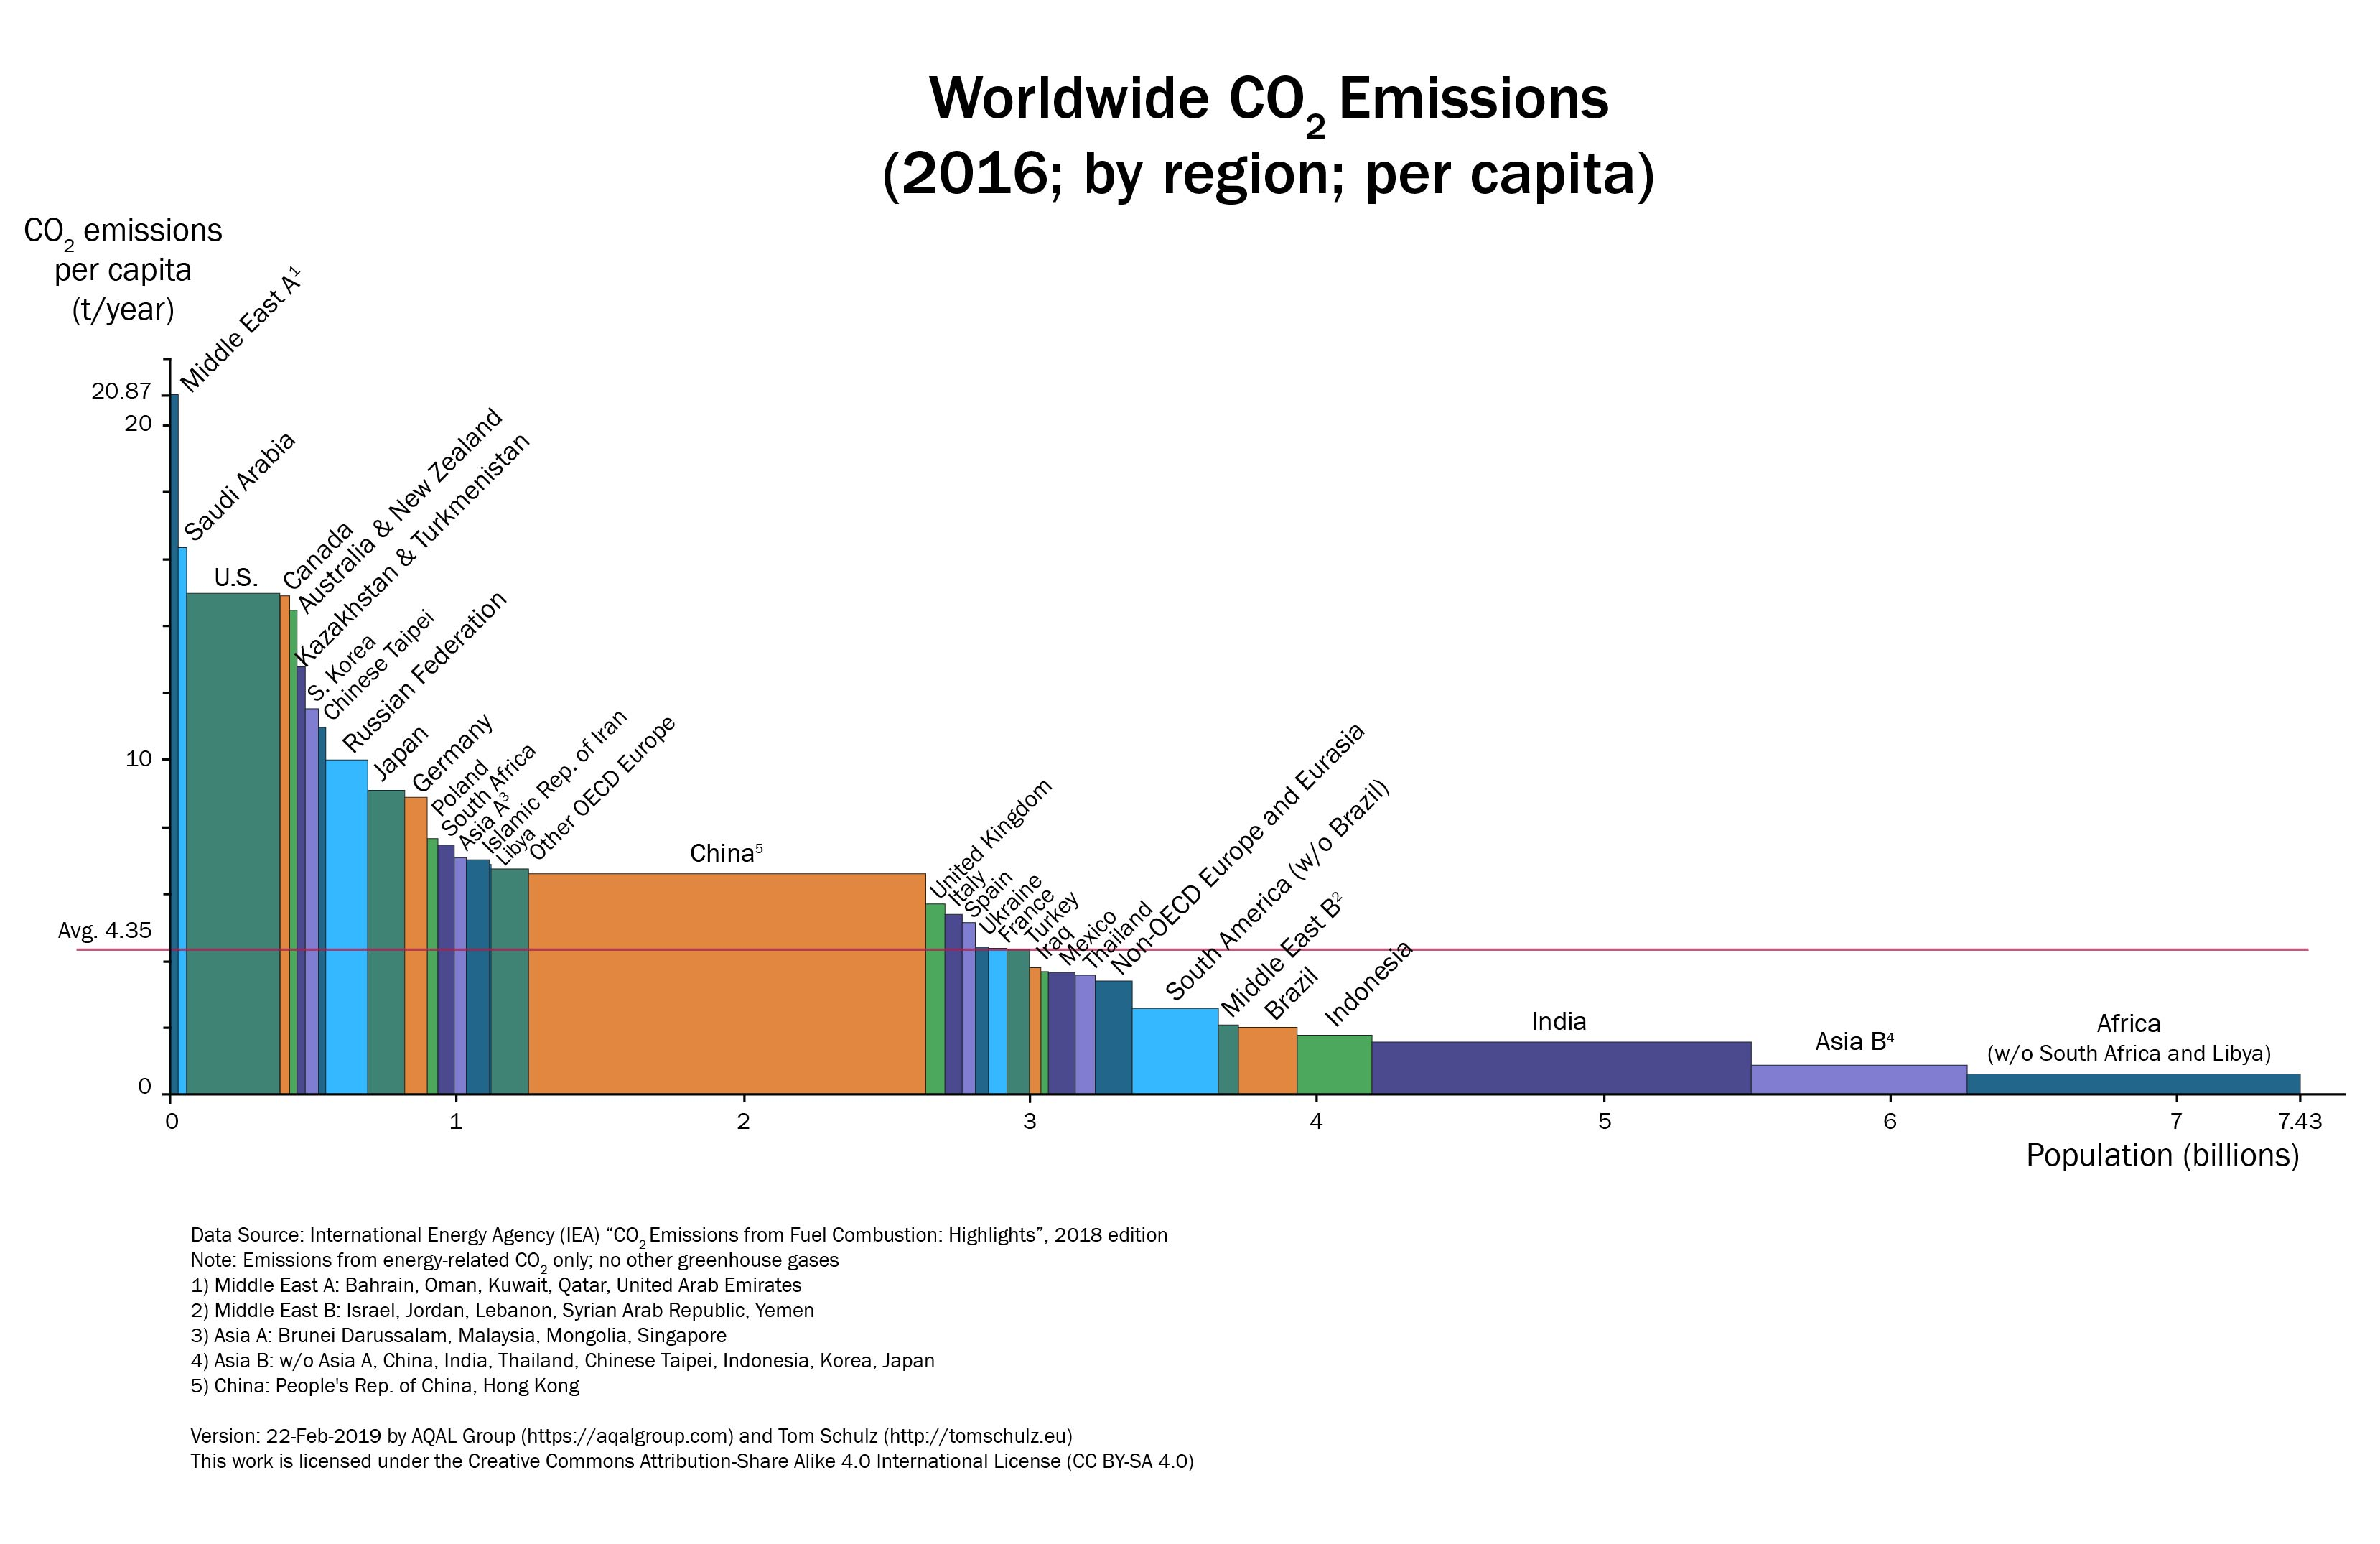 https://upload.wikimedia.org/wikipedia/commons/8/81/2018_AQAL_Group_variwide_chart_%22Worldwide_Co2_emissions%22.jpg